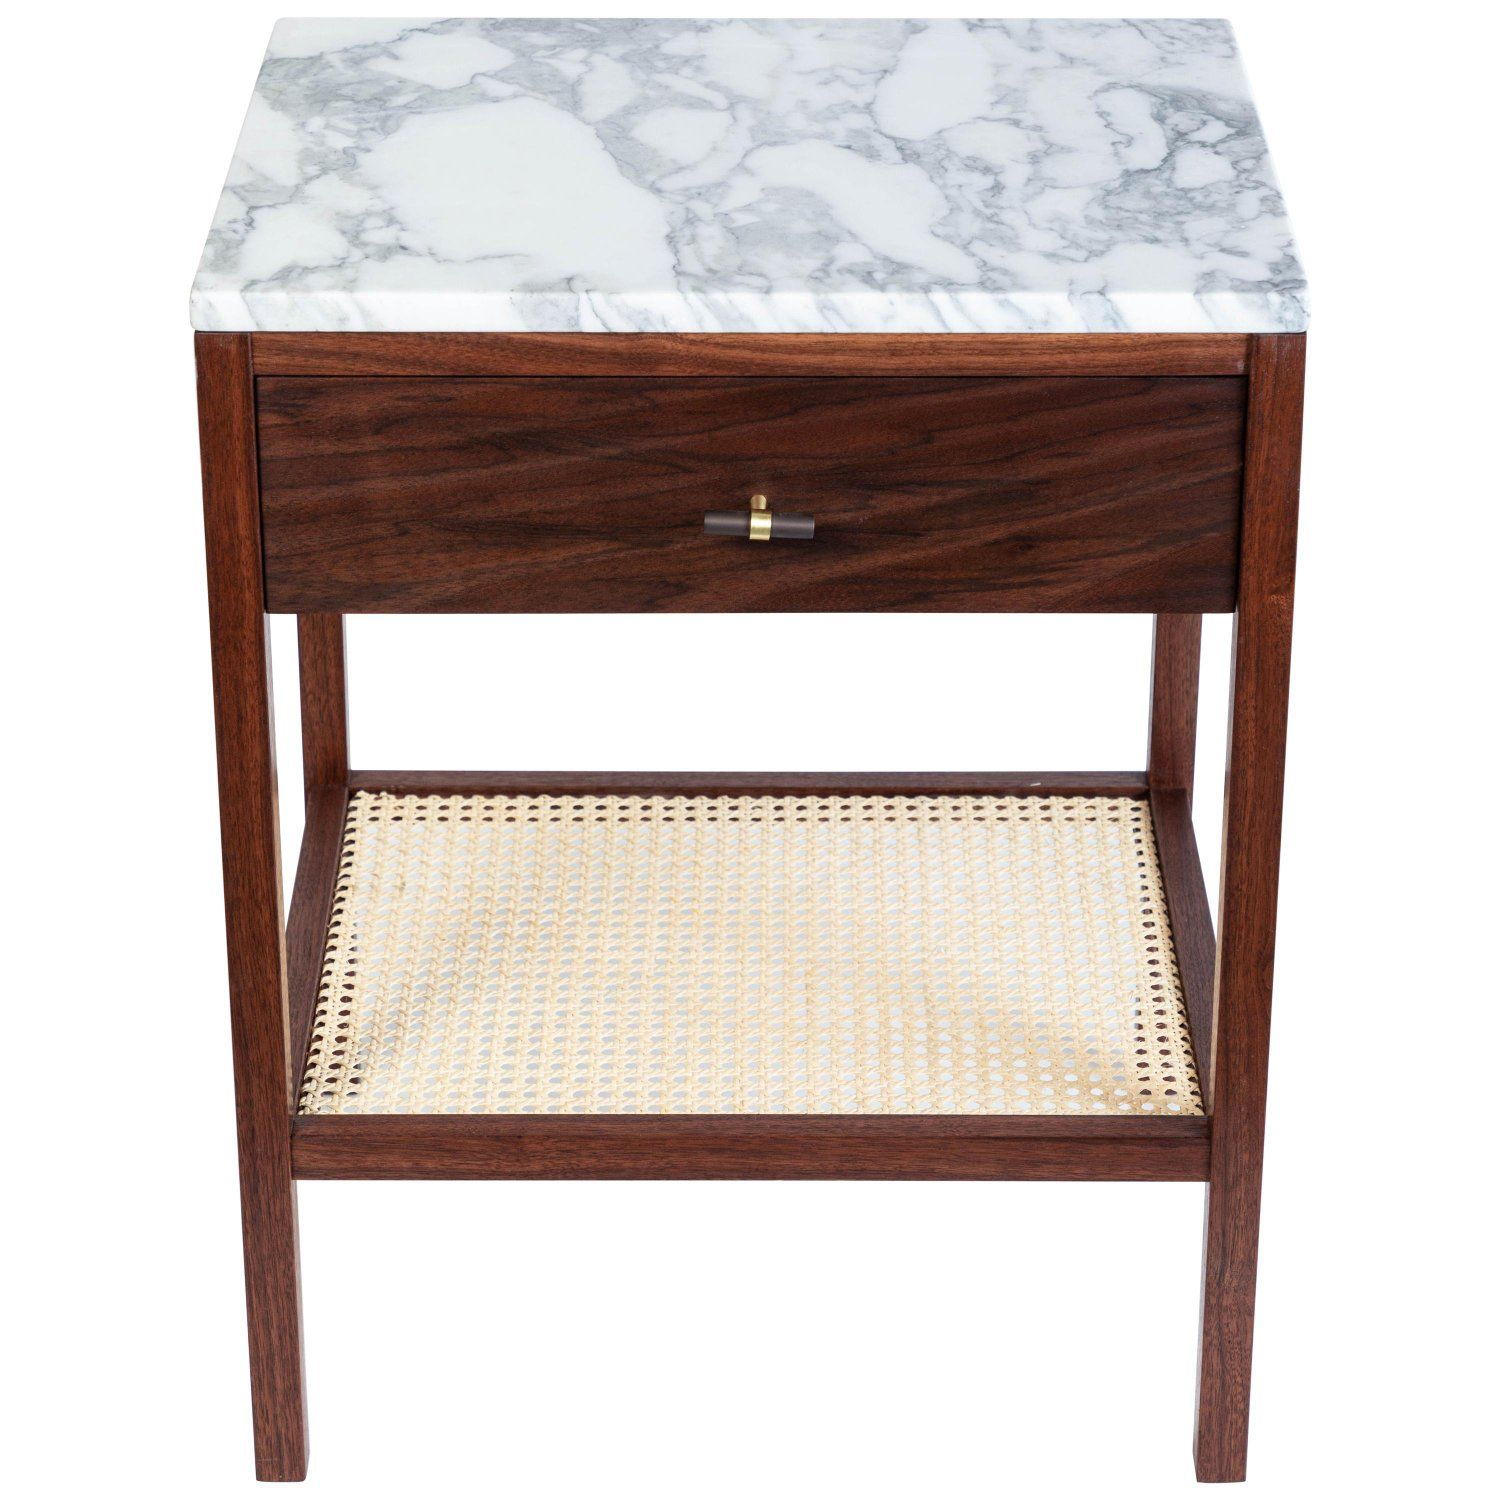 Custom Made Walnut Night Stand with a Marble Top and Caned